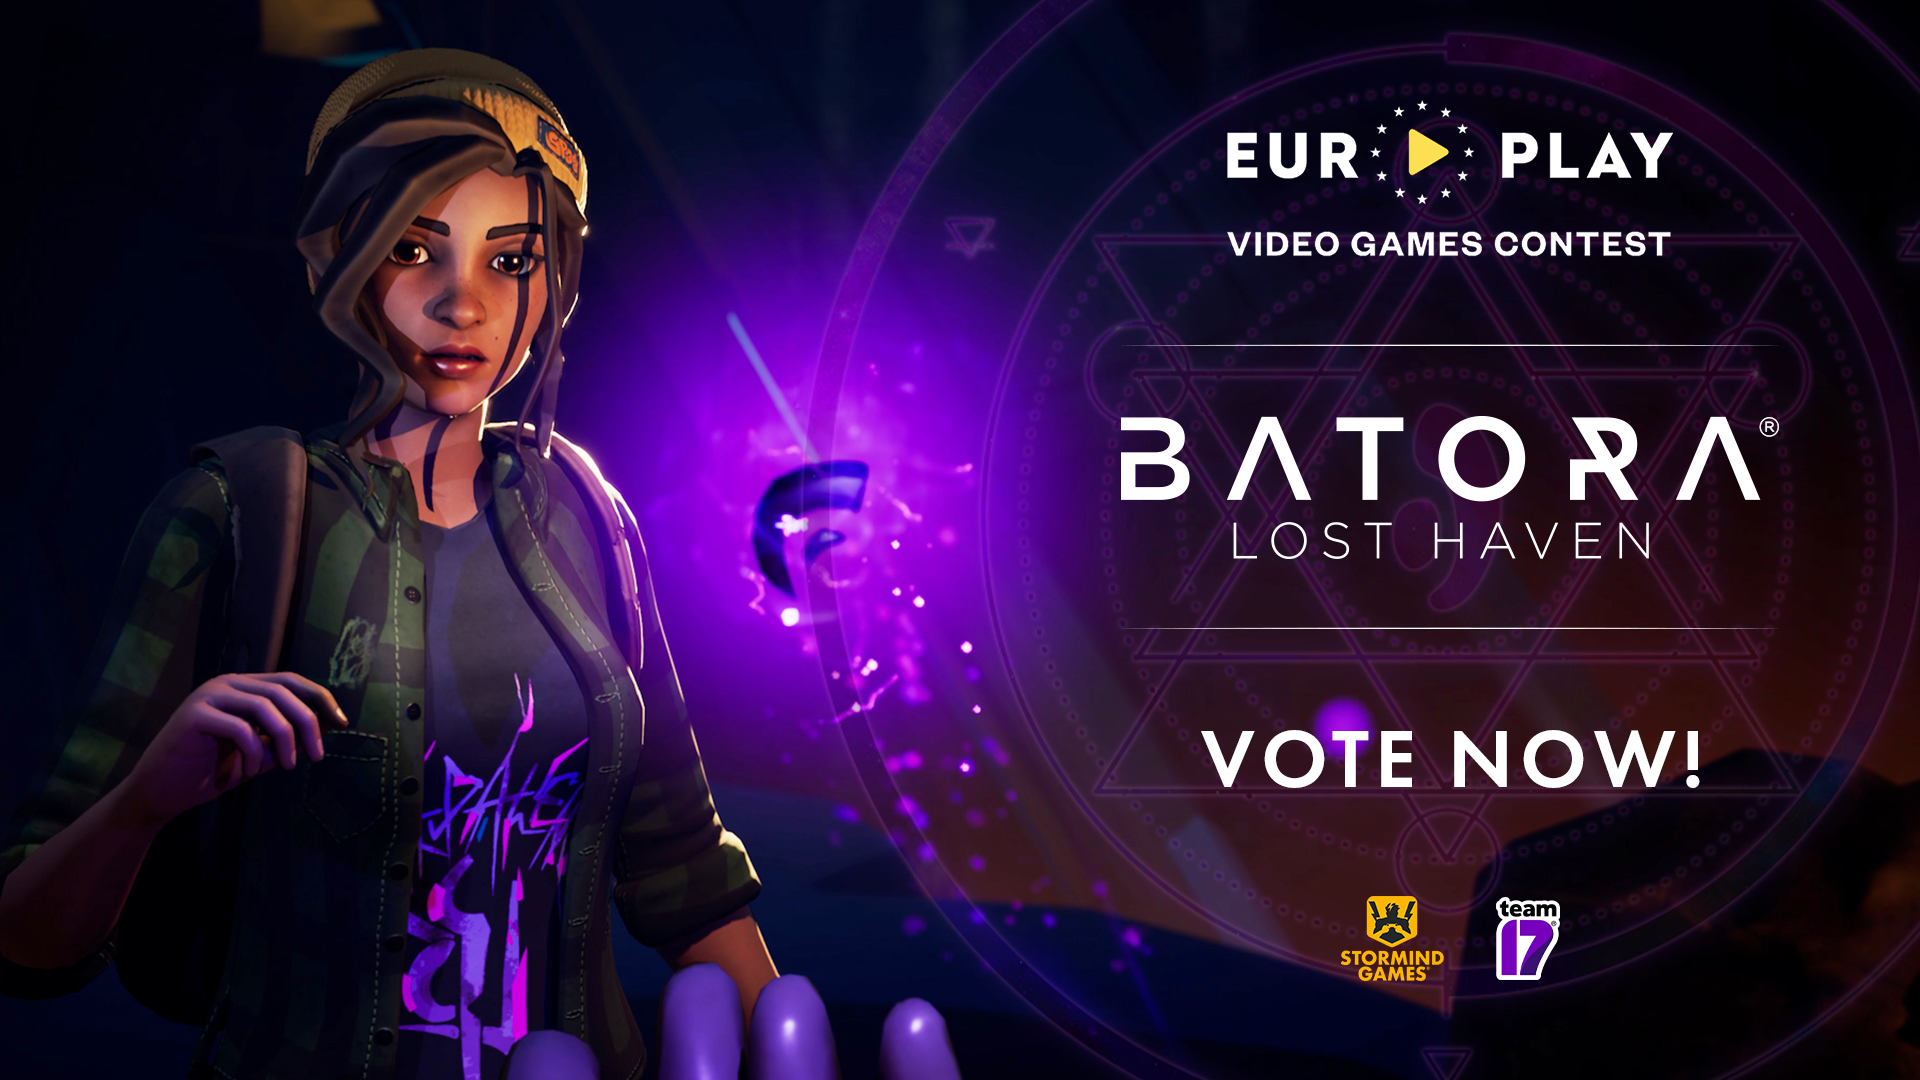 Vote for Batora at the EuroPlay Video Game Contest!